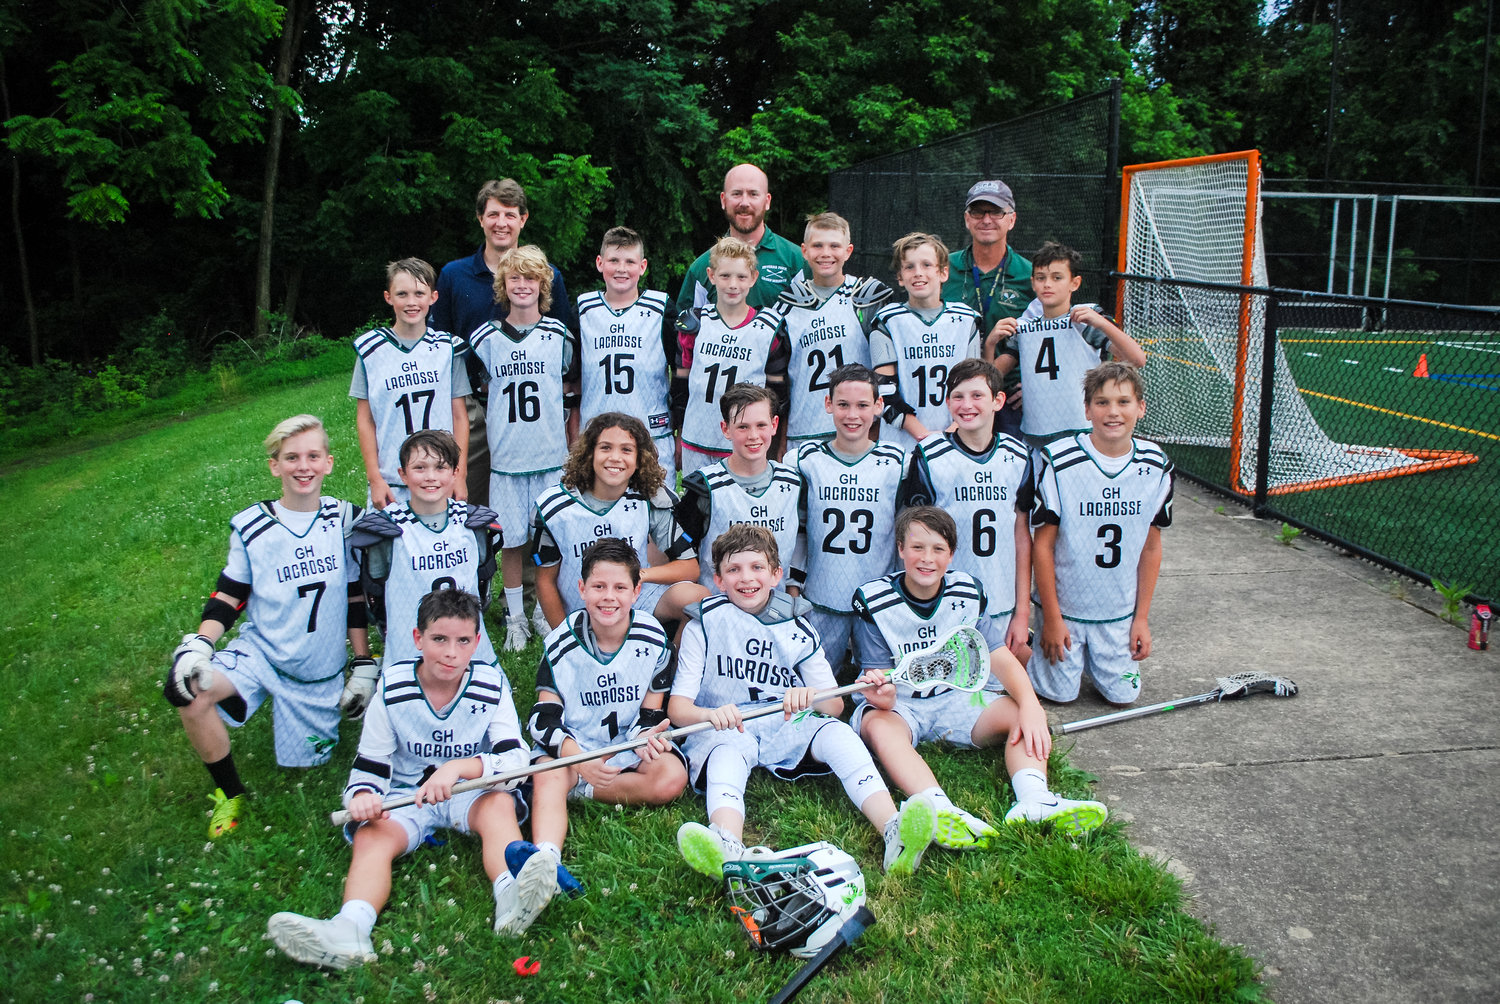 The Severna Park Green Hornets Swarm fifth-grade boys lacrosse team secured a state-tournament championship with wins over Silver Spring and Cockeysville to go with a county-championship victory over the Pasadena Bay Dogs.